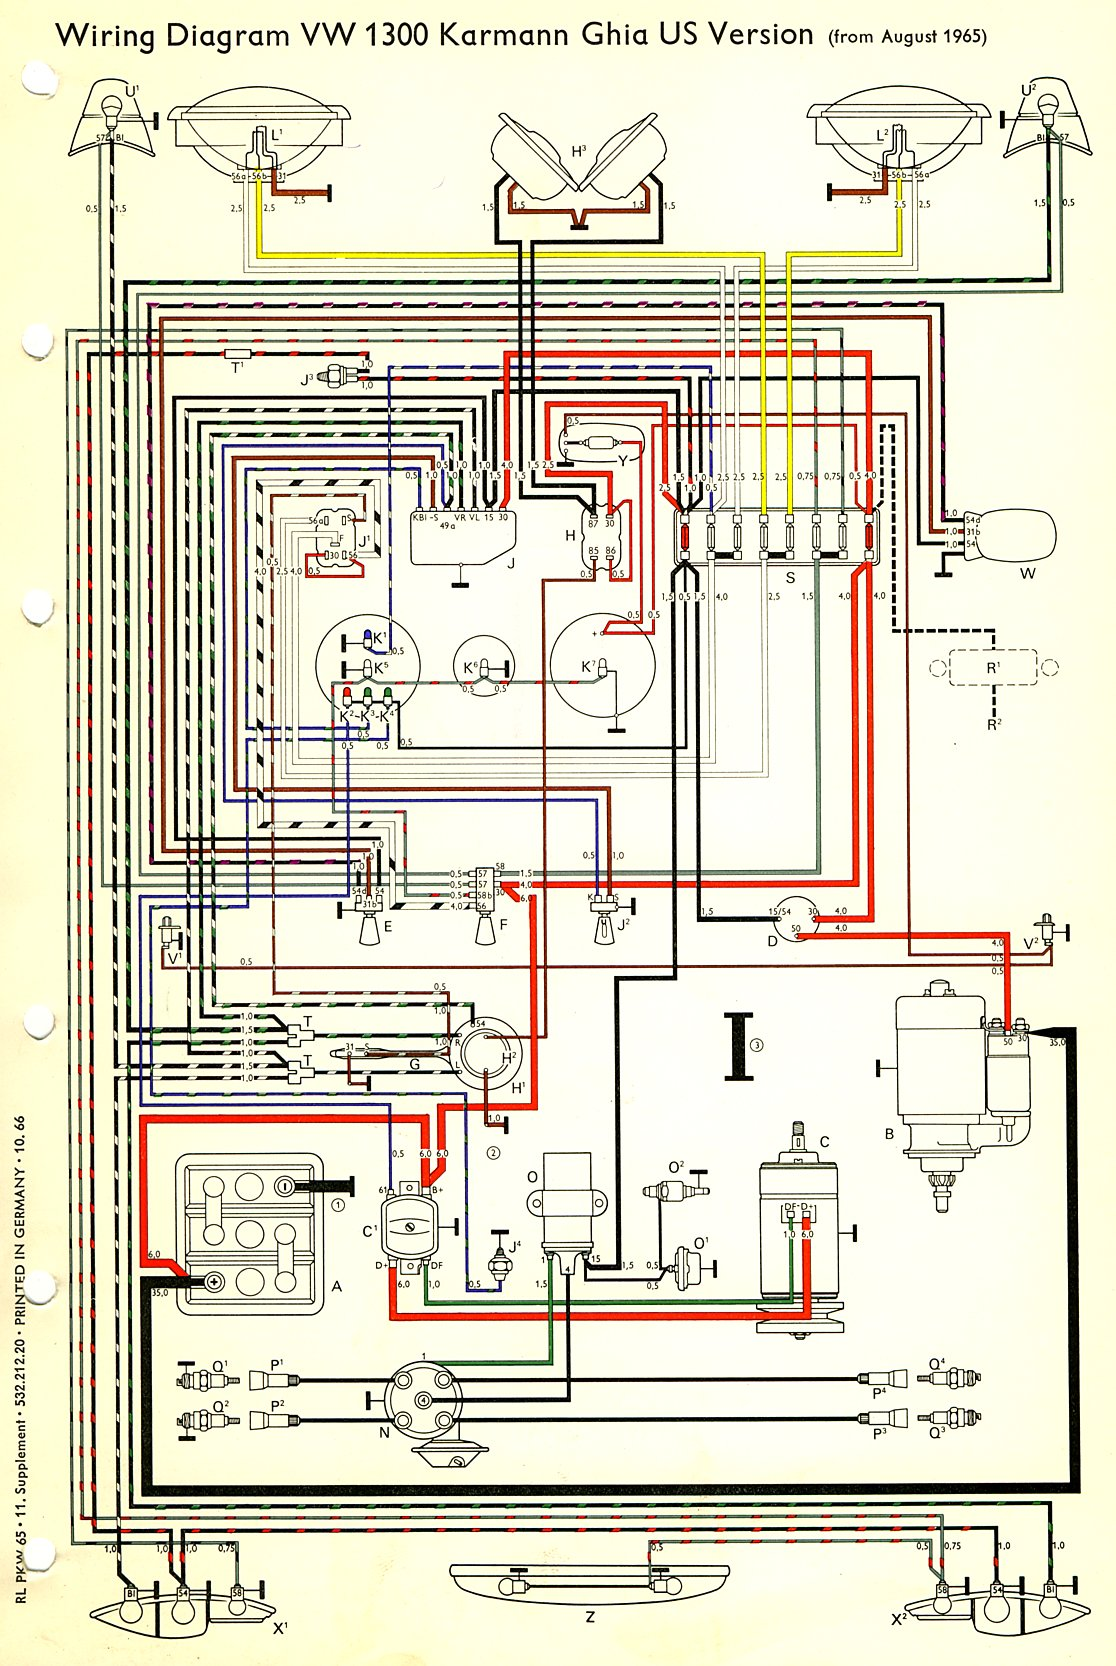 66 vw transporter wiring diagram - wiring diagrams schematics 66 vw bug fuse box 66 vw bug wire diagram of #5